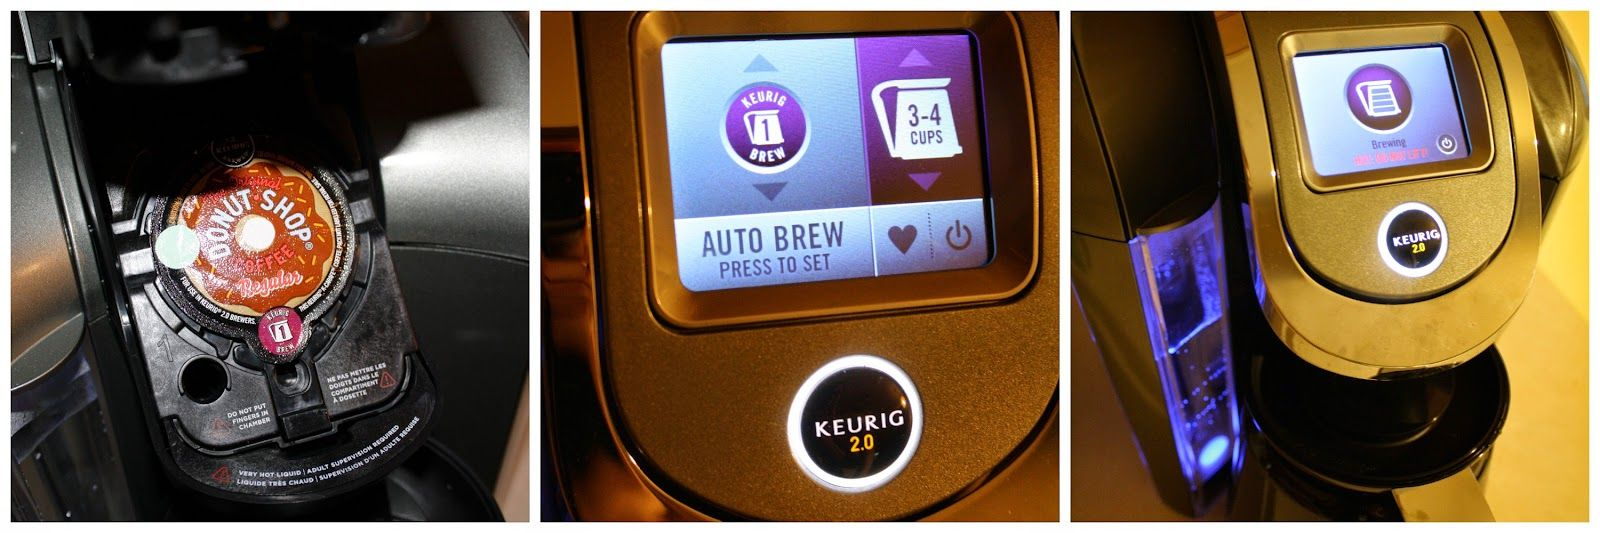 Keurig 2.0 Review (With images) Keurig, Reviews, Living well